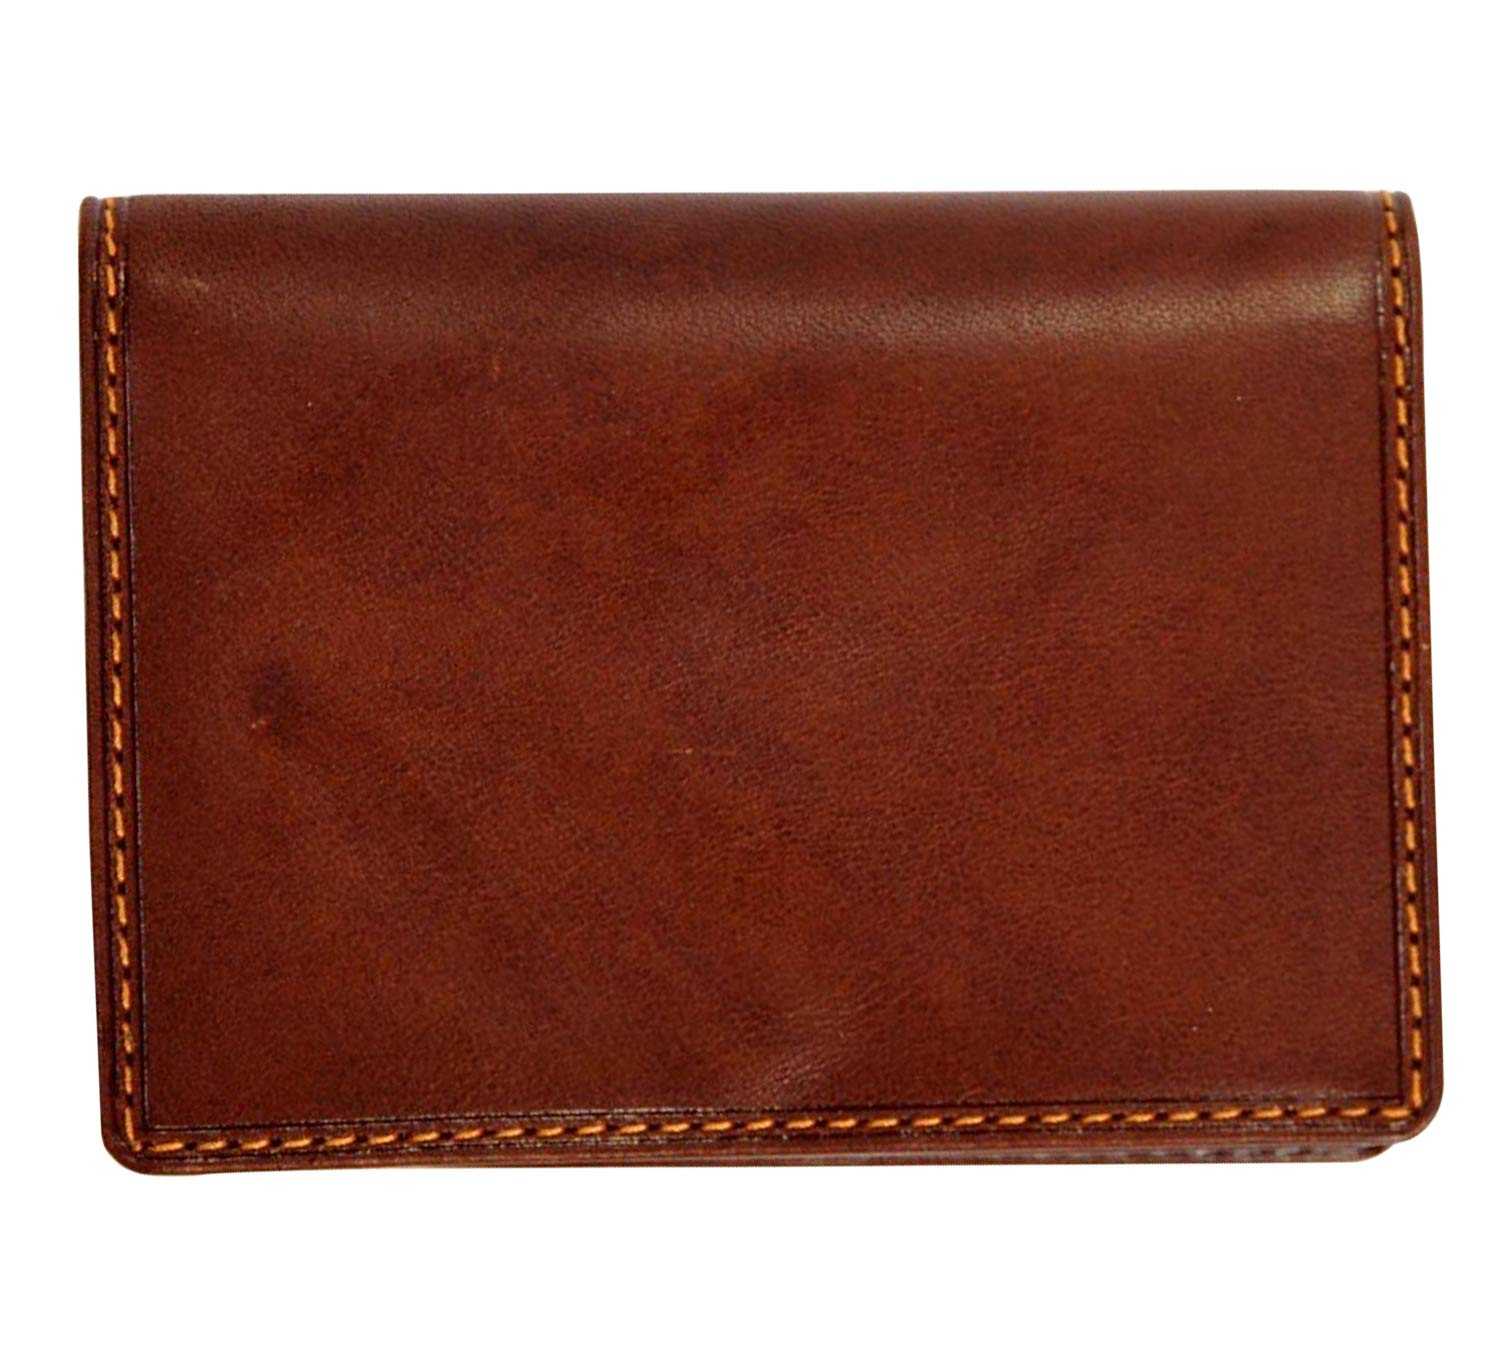 Tony Perotti Unisex Italian Cow Leather Front Pocket Business and Credit Card Case Wallet with ID Window in Brown